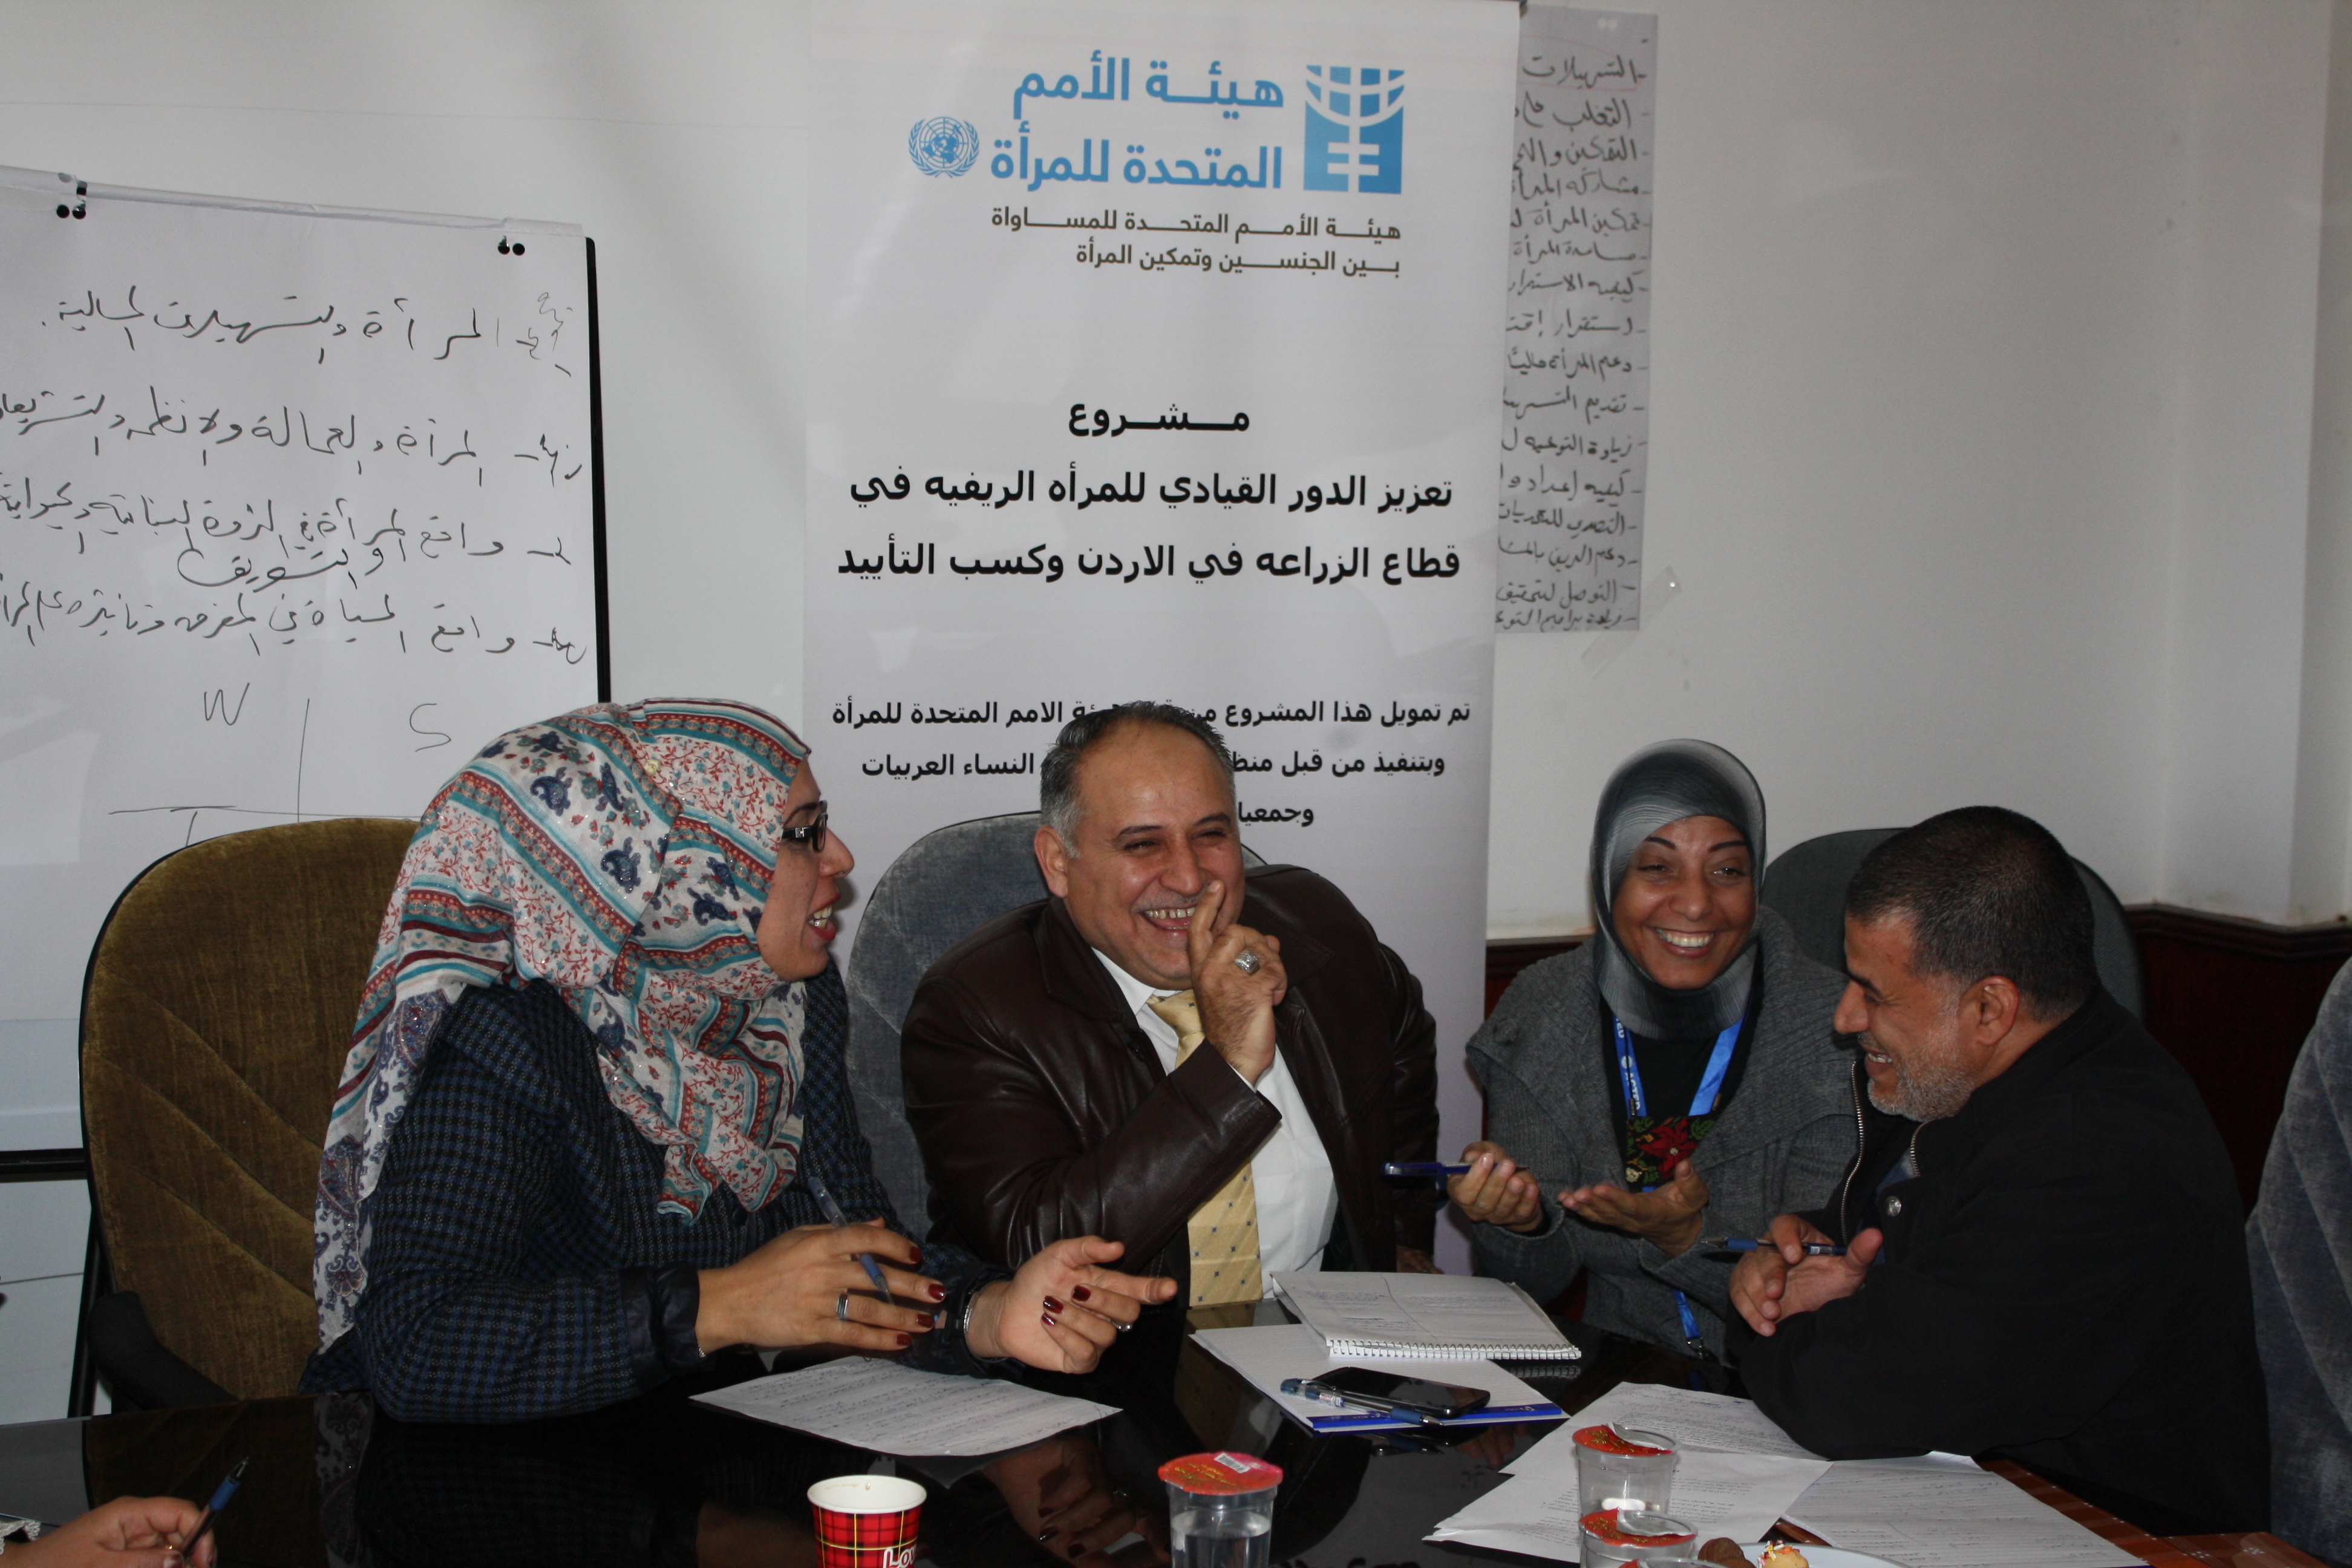 Intergovernorate Roundtable in Northern Jordan Proposes a Way Forward for Promoting Rural Women's Empowerment in Agriculture